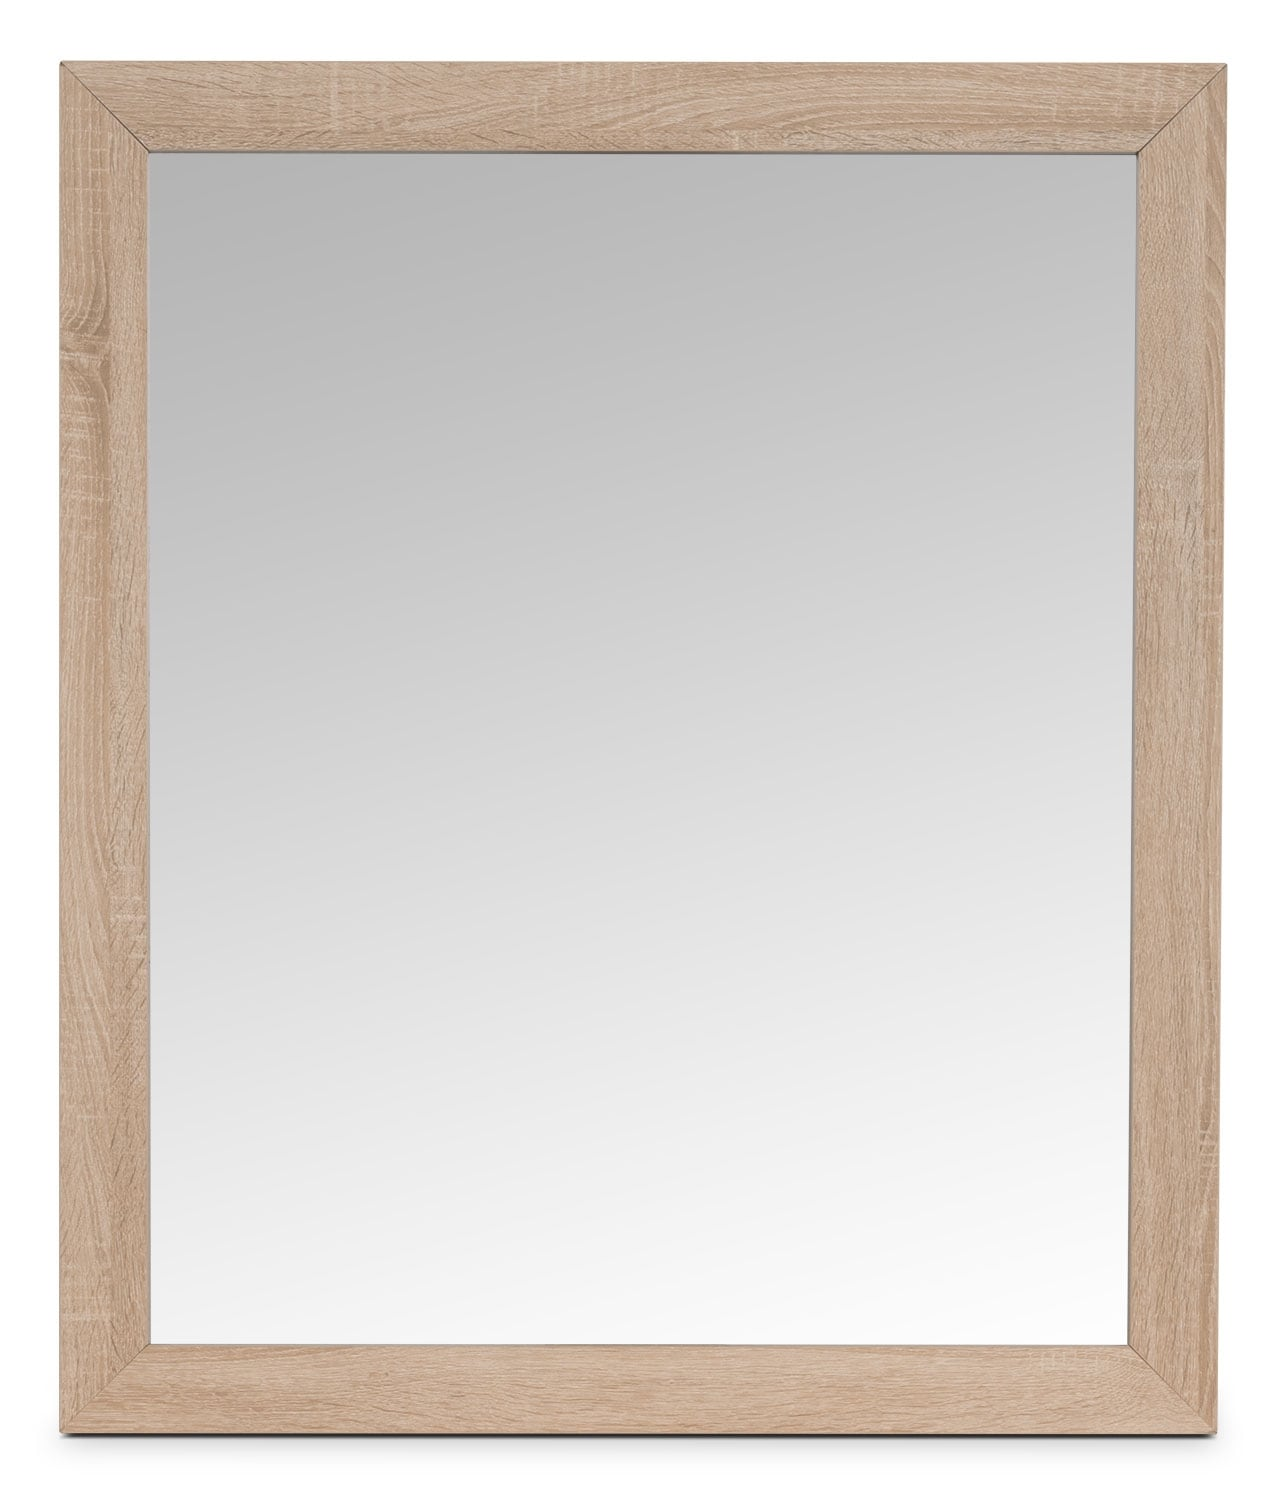 Bedroom Furniture - Sierra Mirror